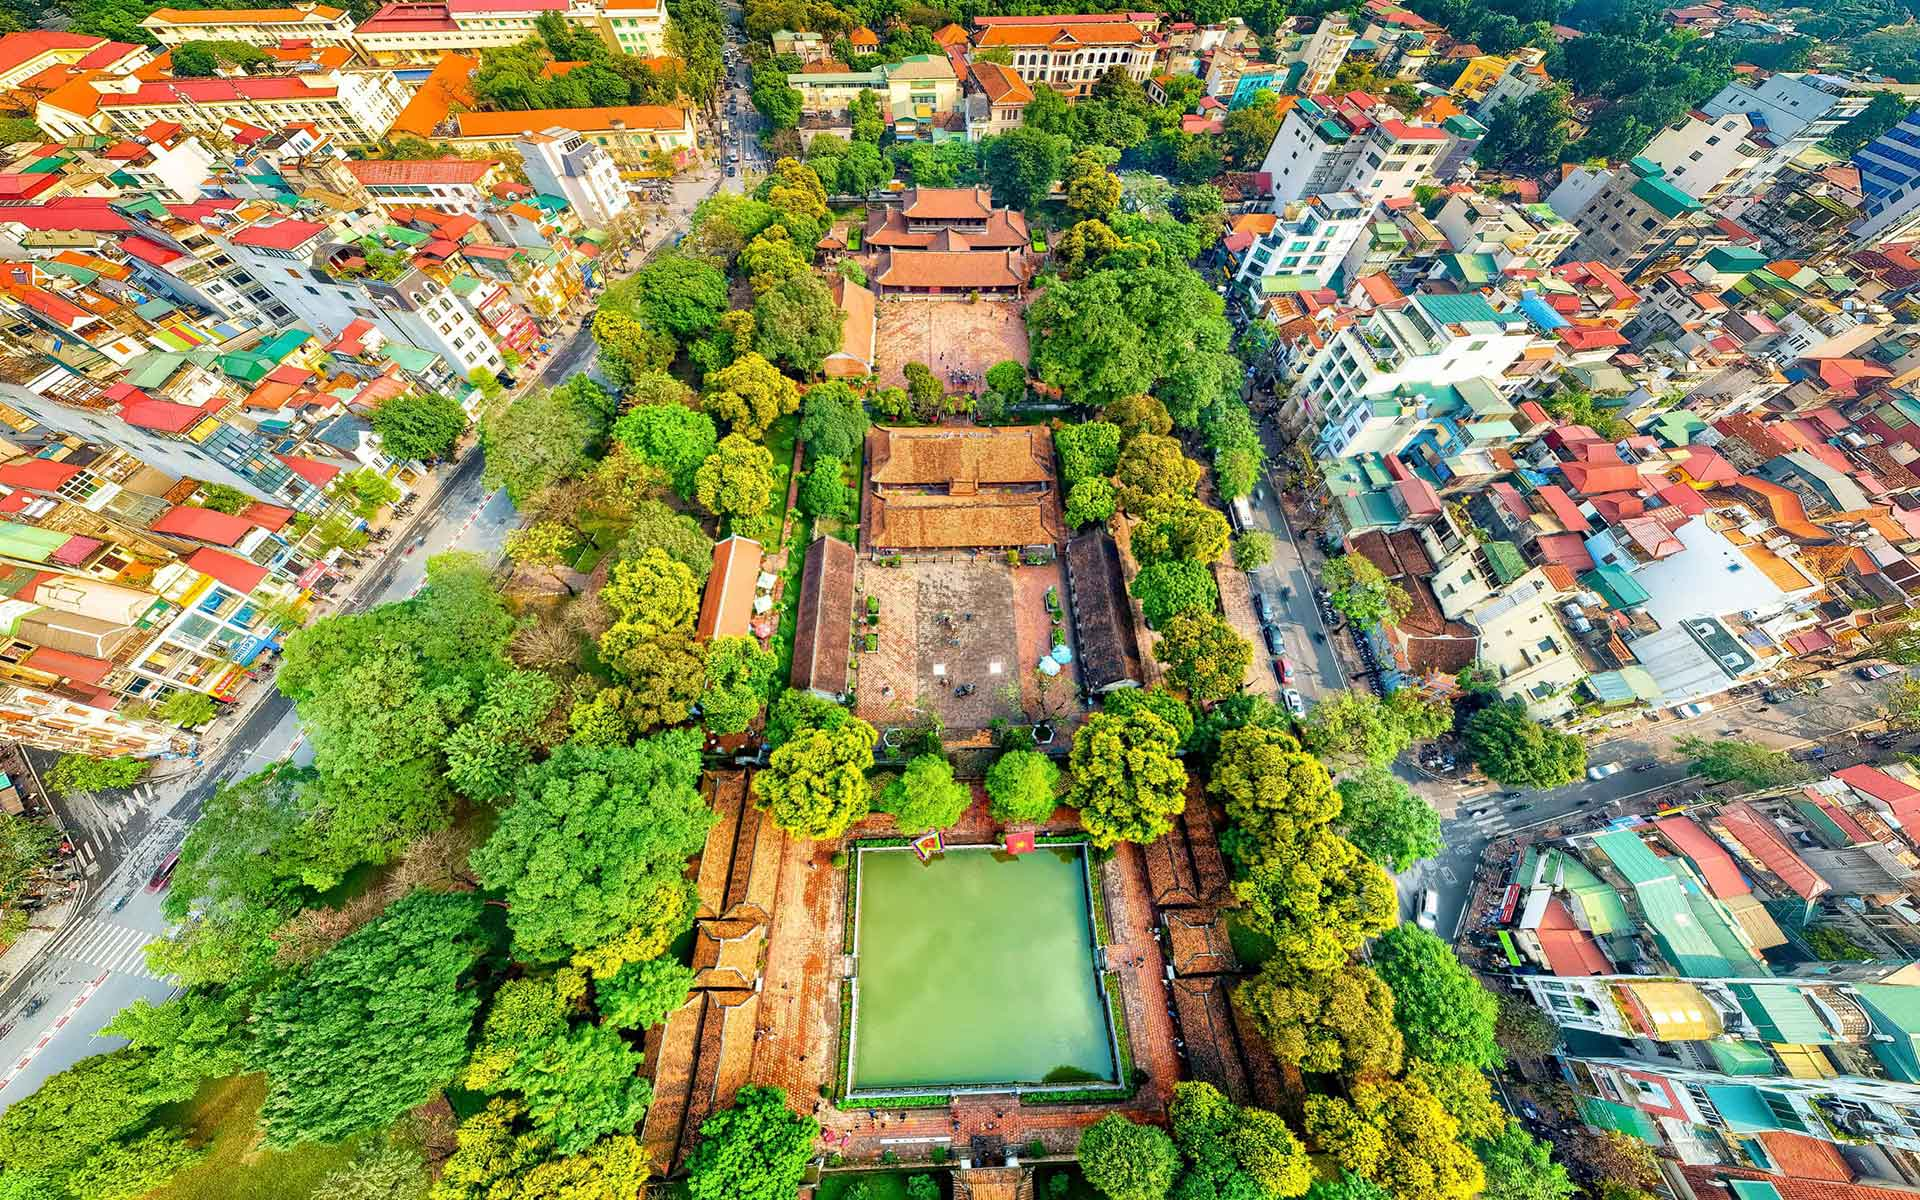 View of Hanoi's Literature Temple from above